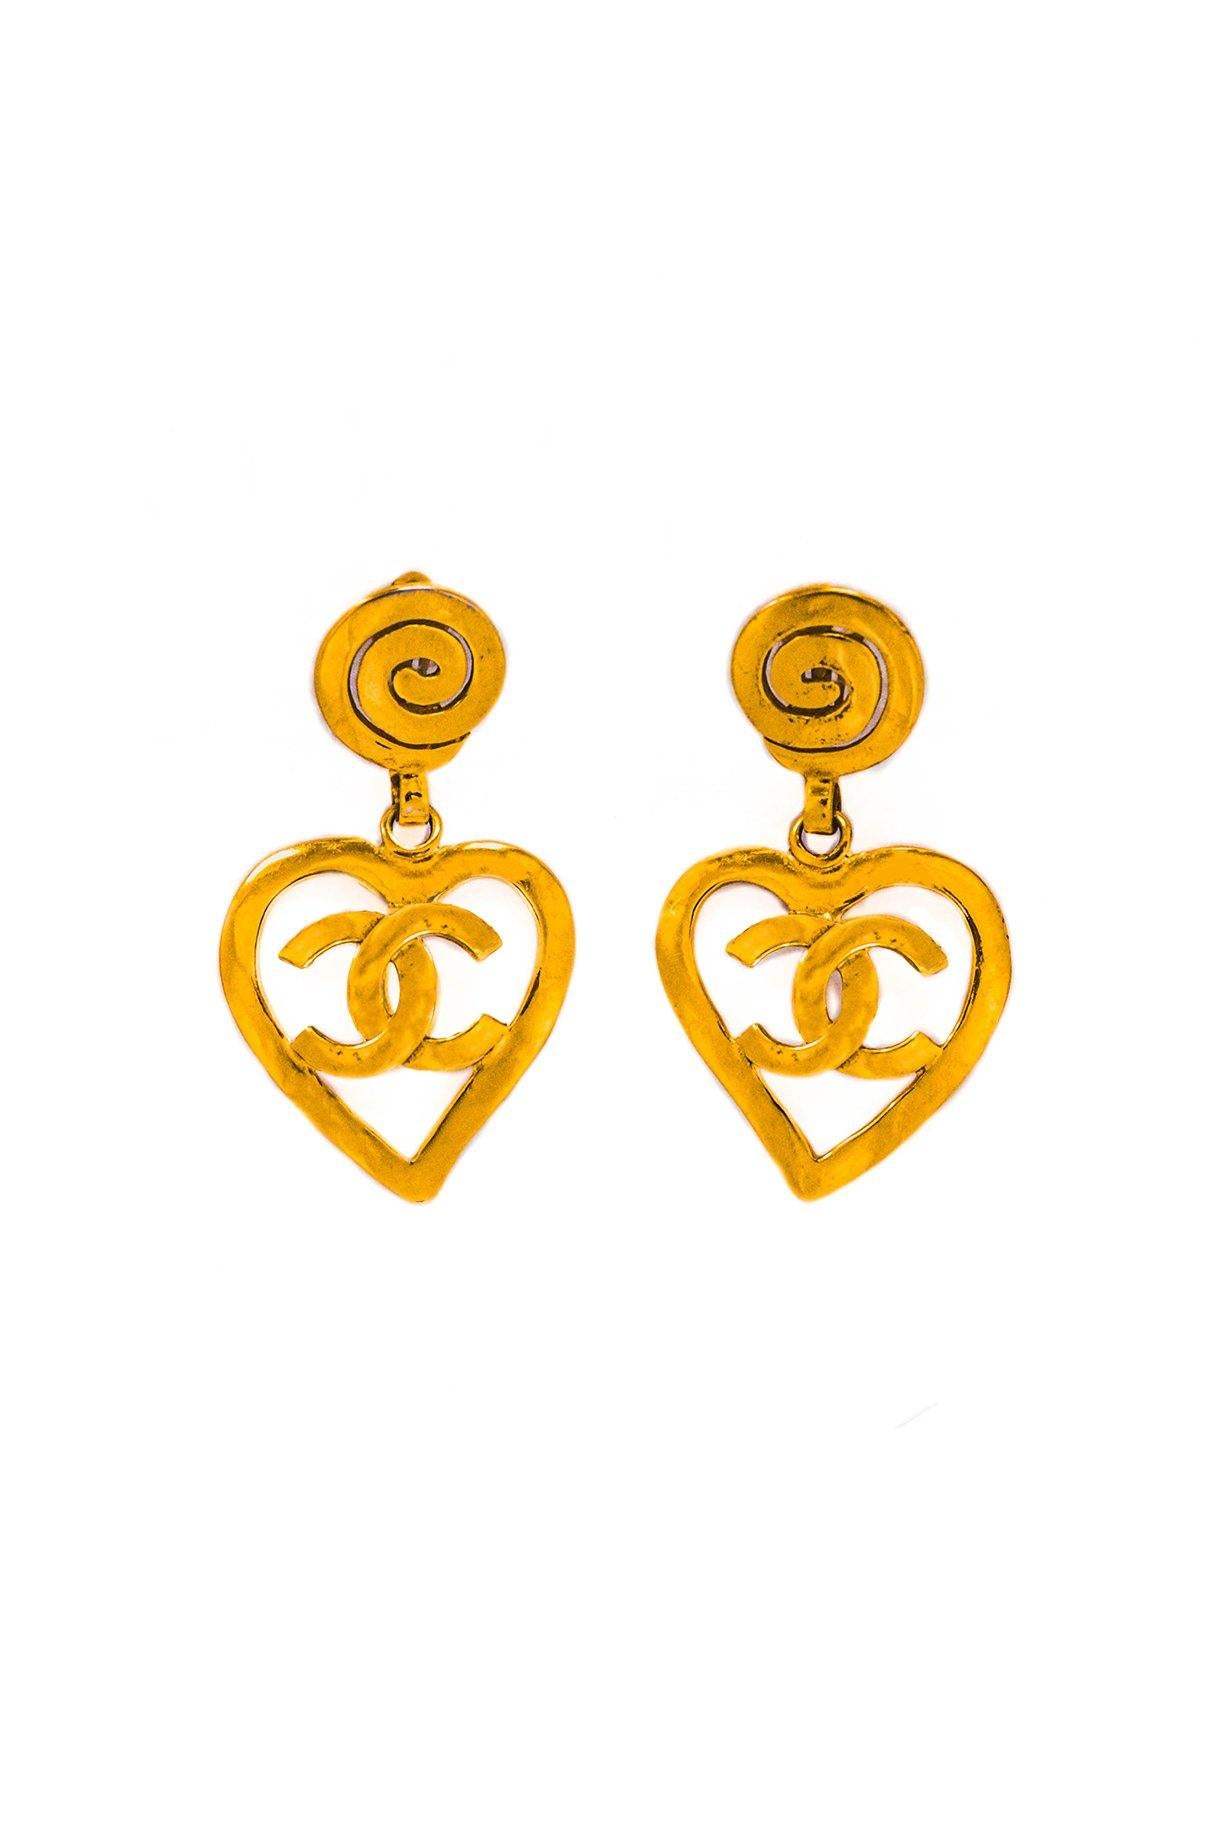 Vintage Chanel CC Heart Clip-on Drop Earrings from Sweet and Spark